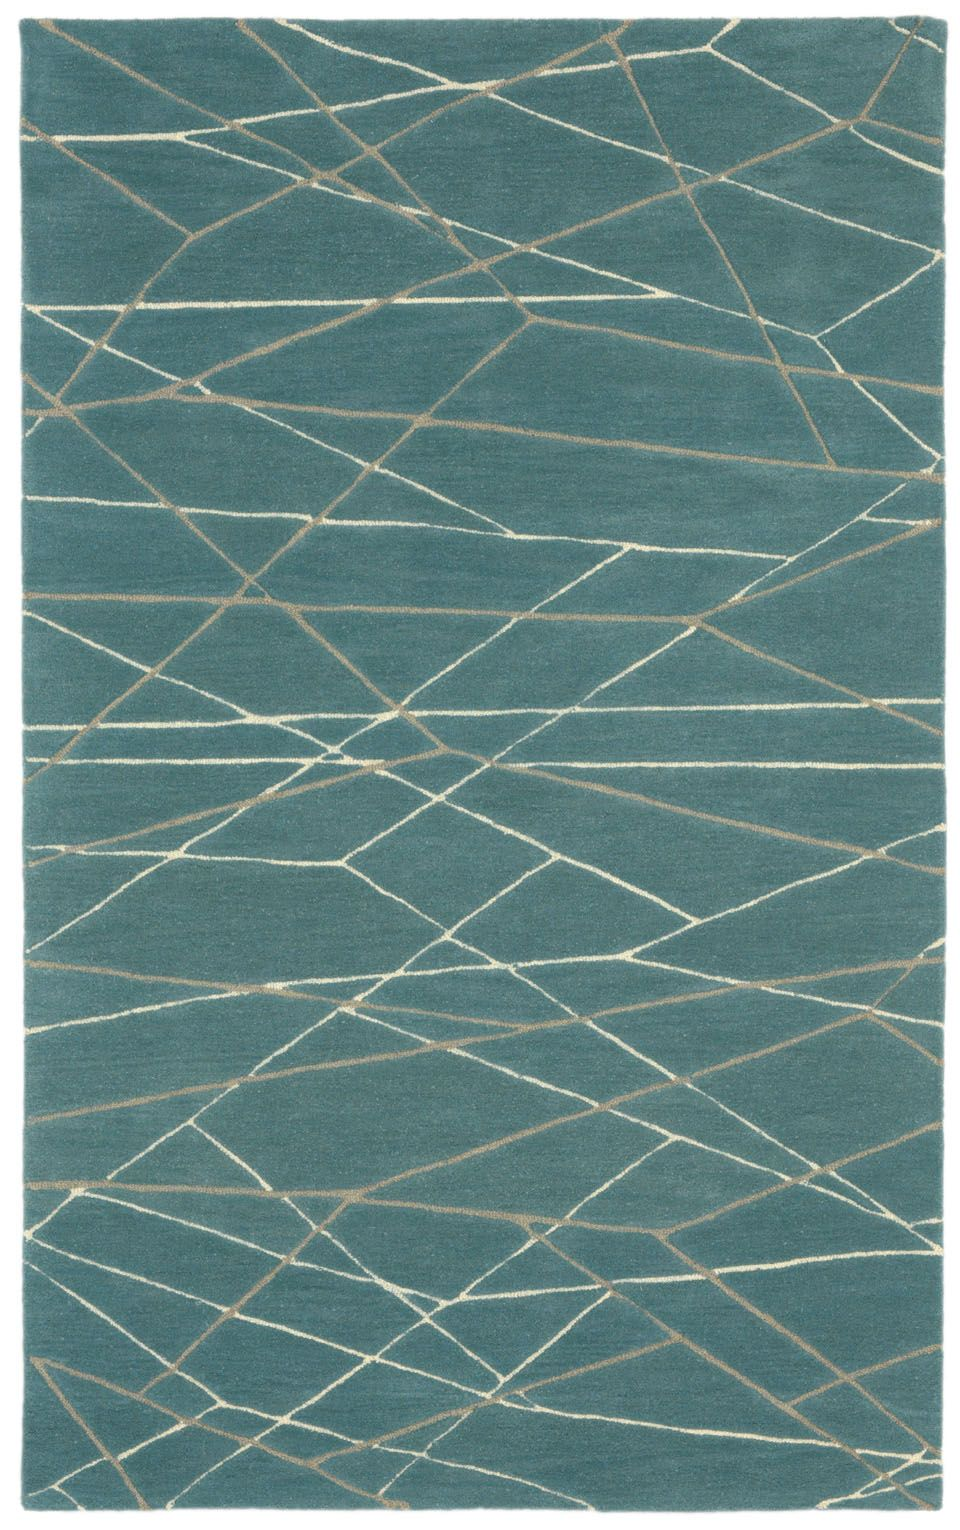 Your Source For The Finest Rugs Home Decor Fashion Accessories Aqua Rug Colorful Rugs Indoor Rugs